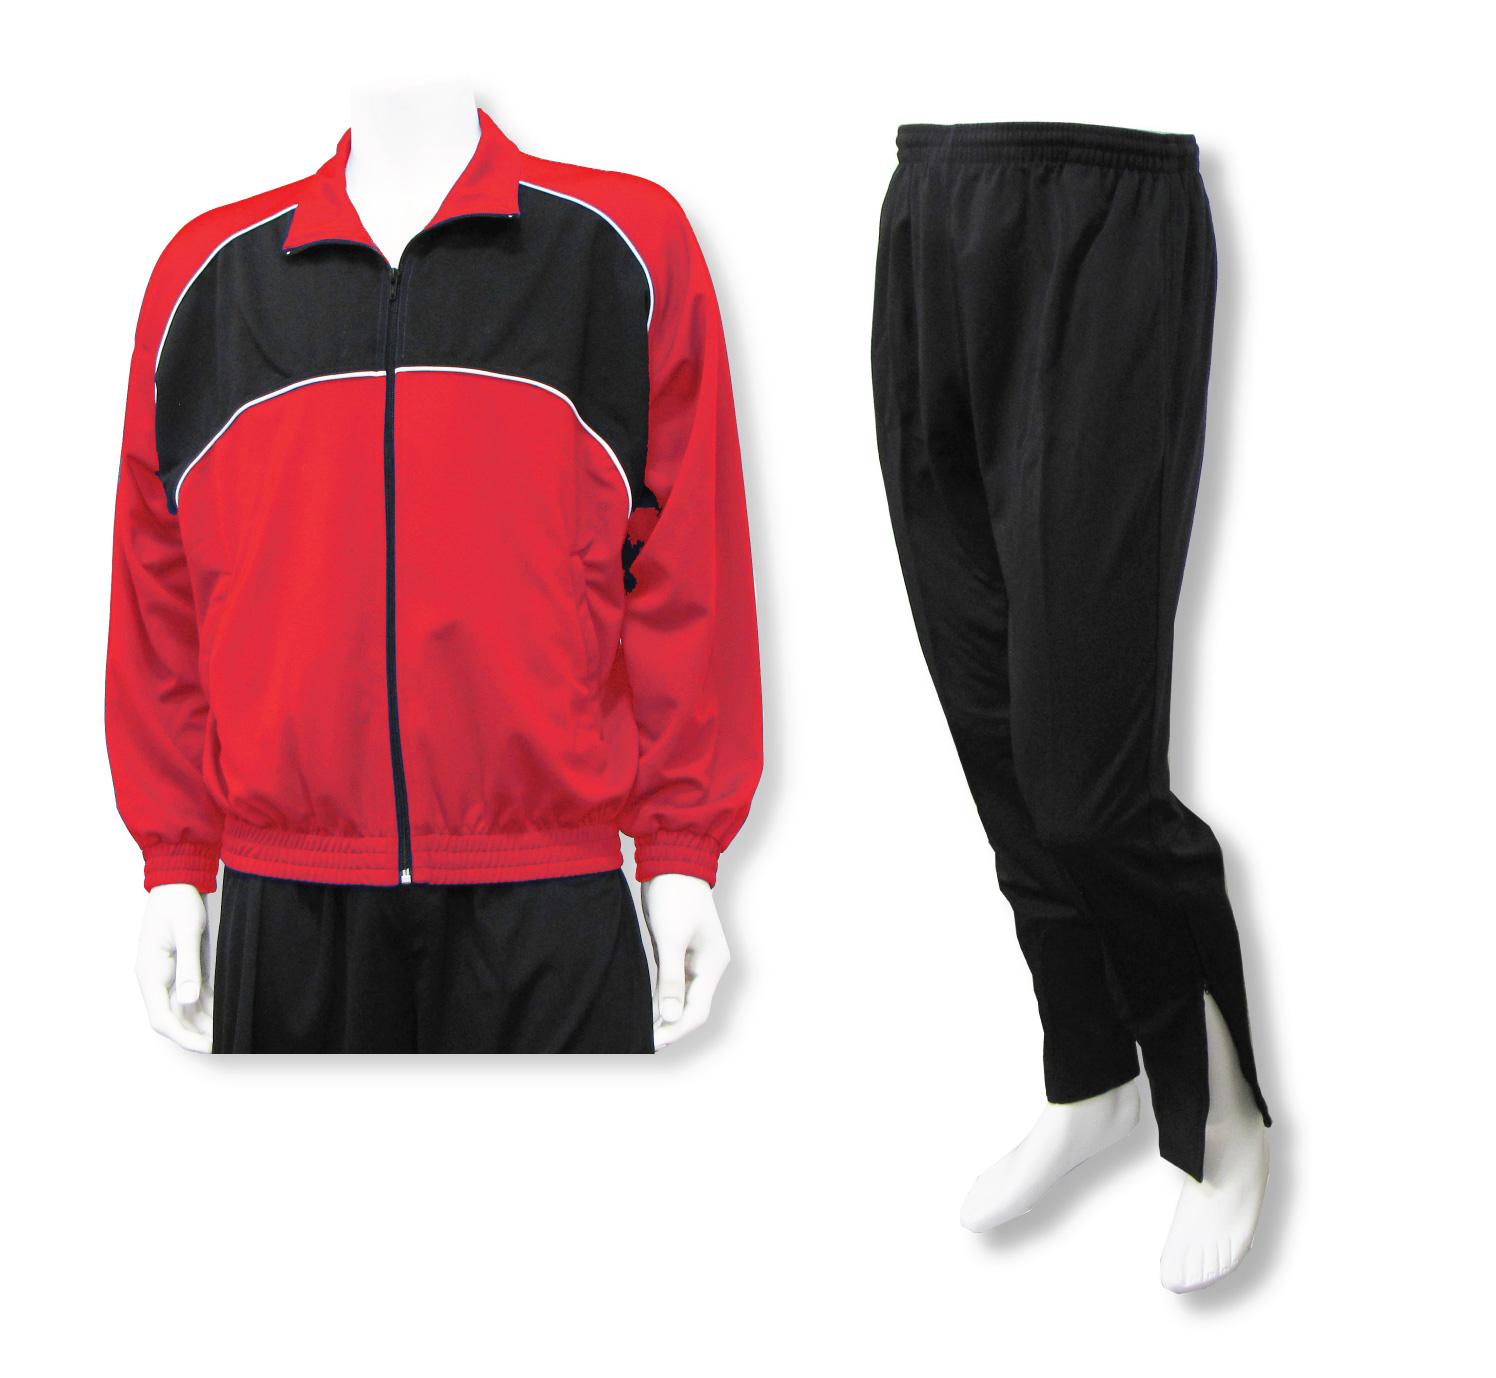 Crossfire soccer jacket and pant set in red/black by Code Four Athletics